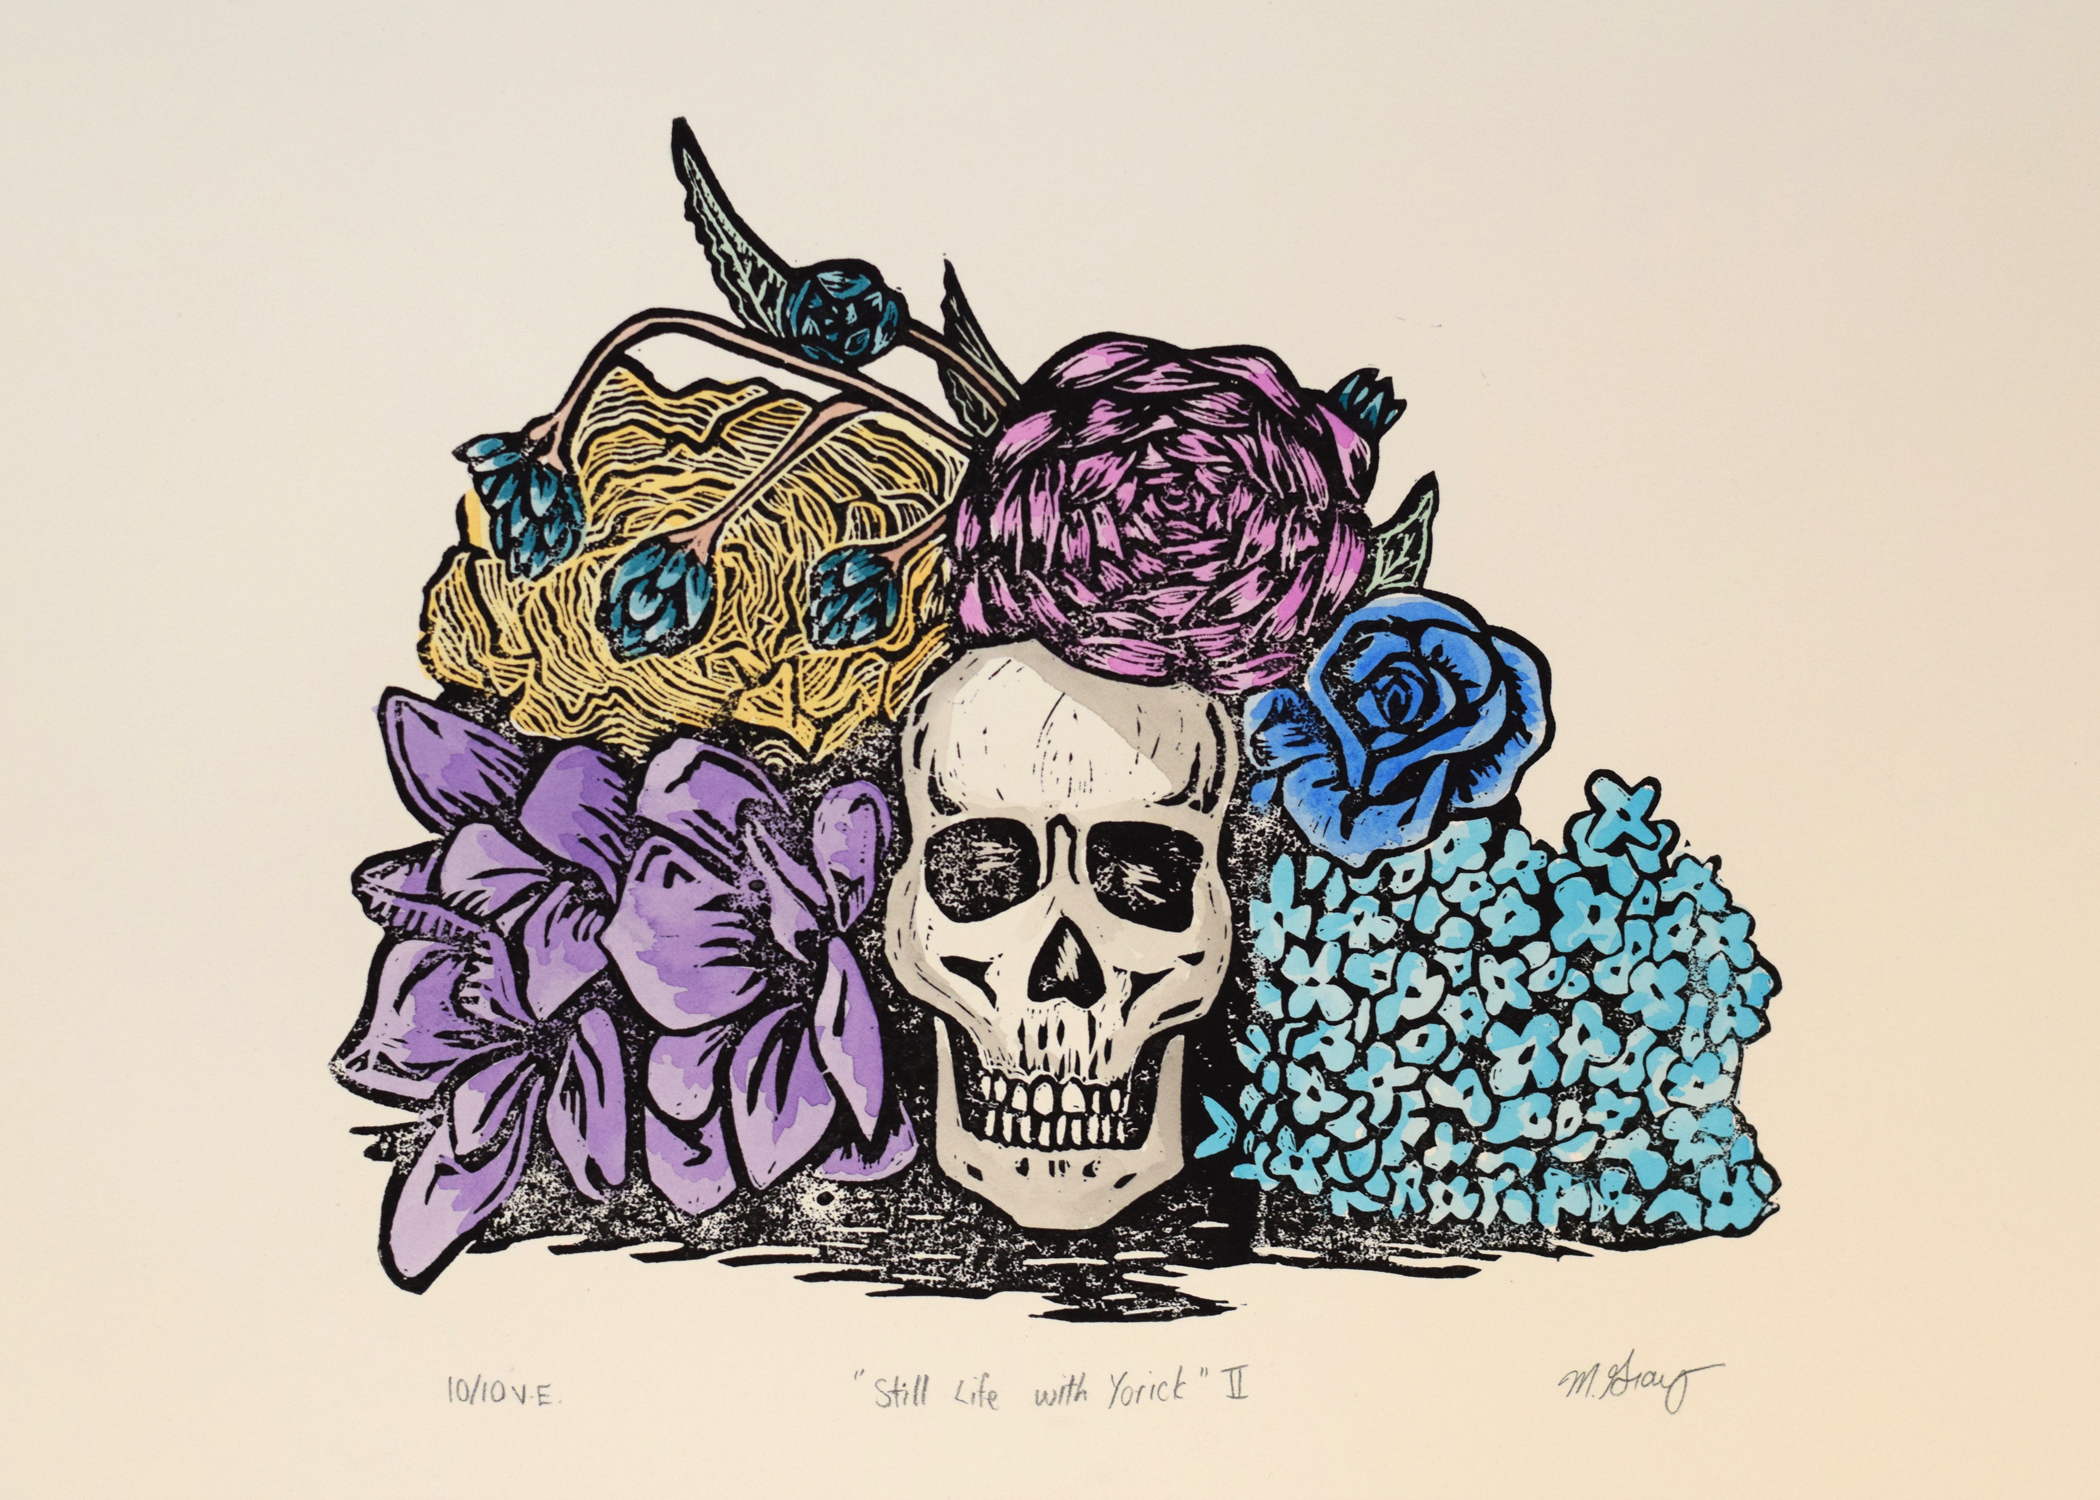 Linocut print - varied edition of 10 with watercolour paint, 11 in. x 15 in.